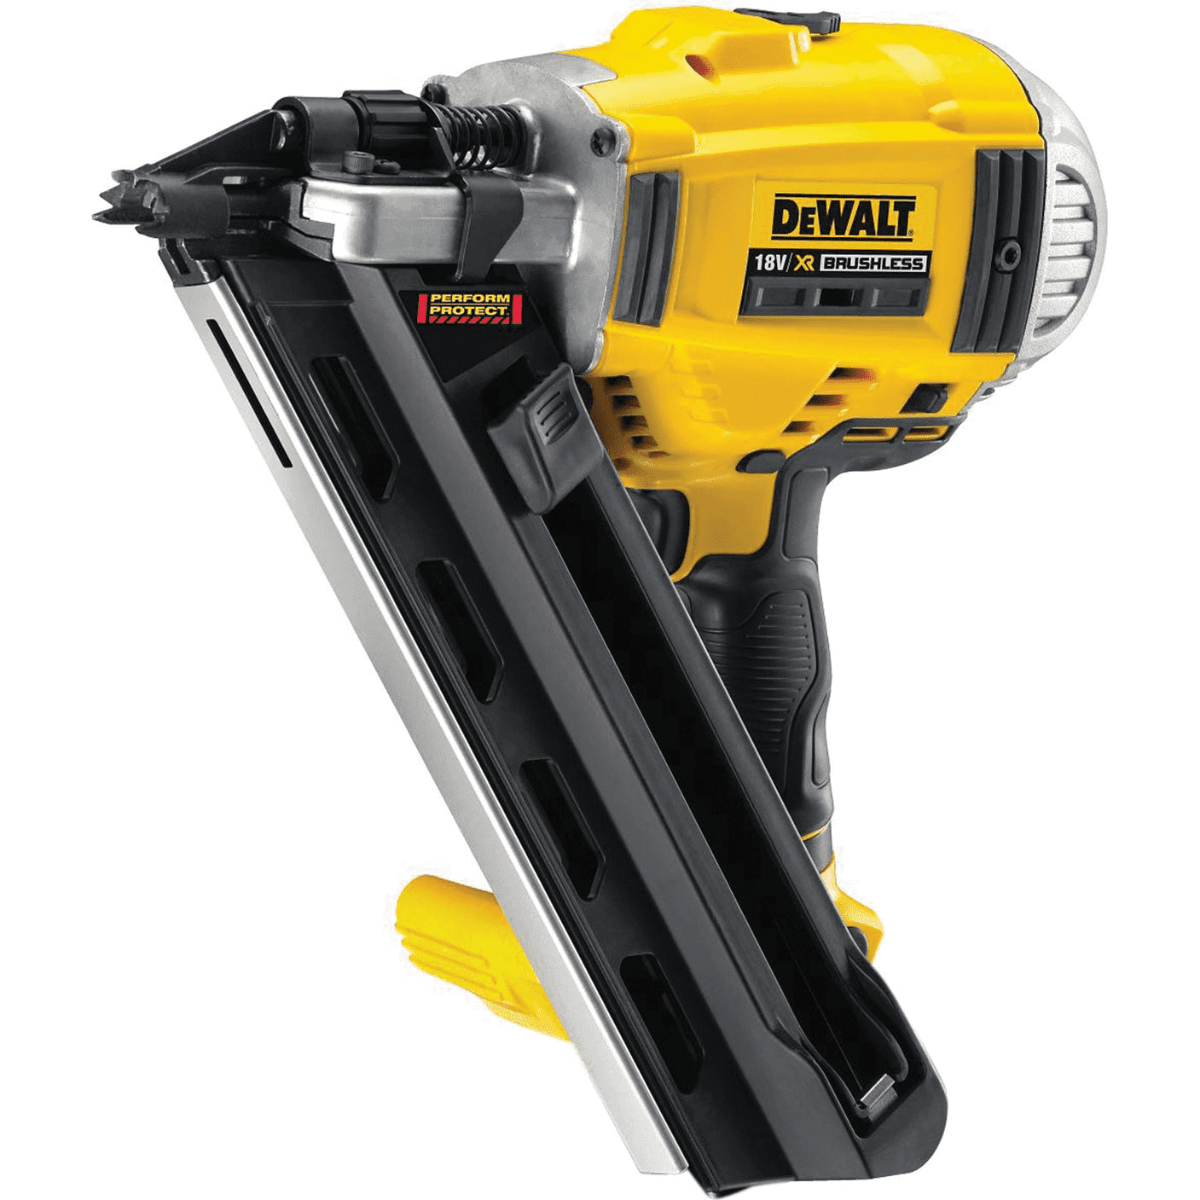 Dewalt DCN692N 18V 1st Fix Framing Nailer, Body Only